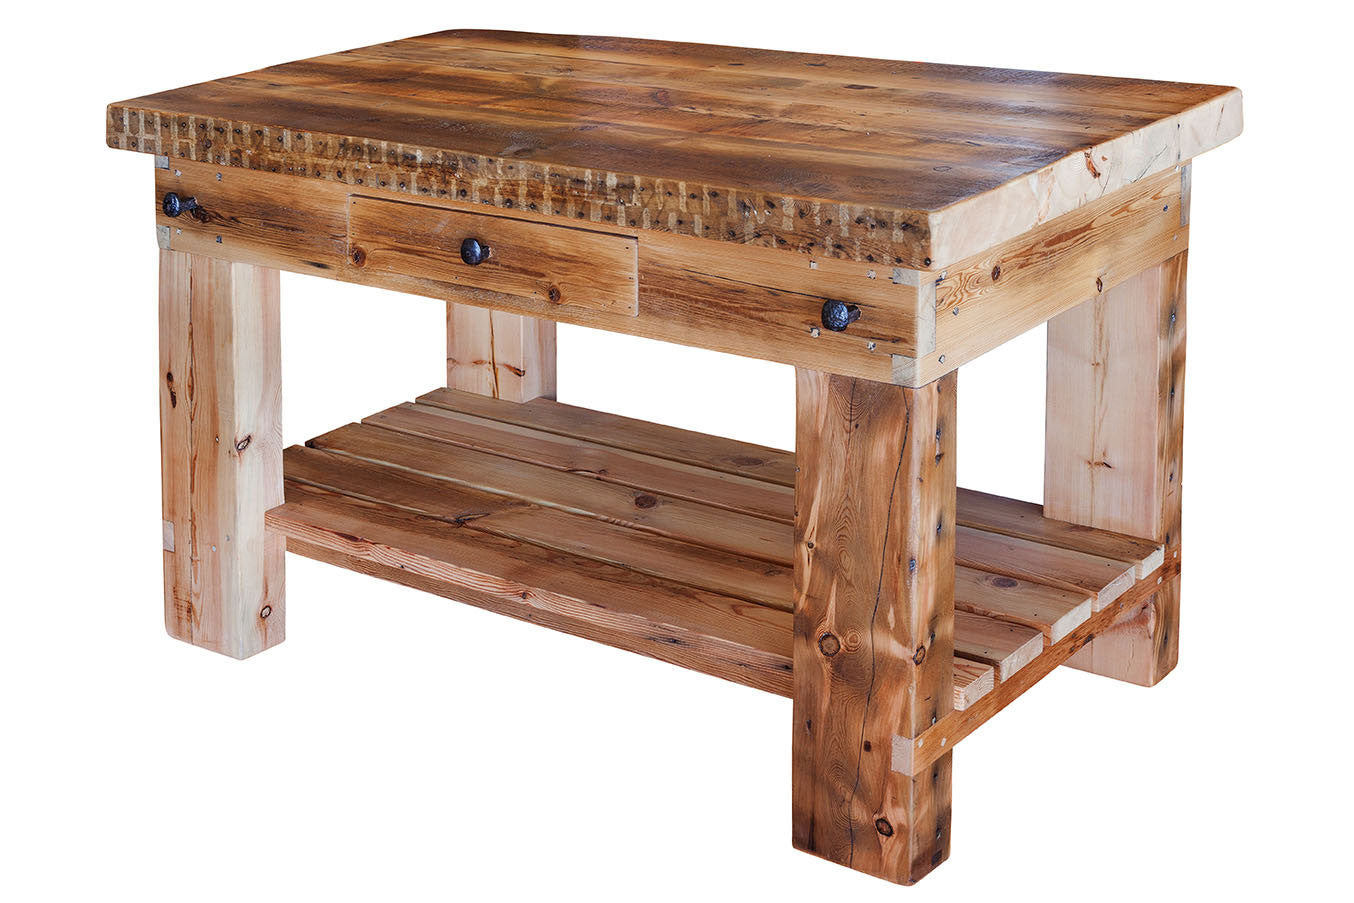 plaistow recycled baltic timber butchers block bespoke